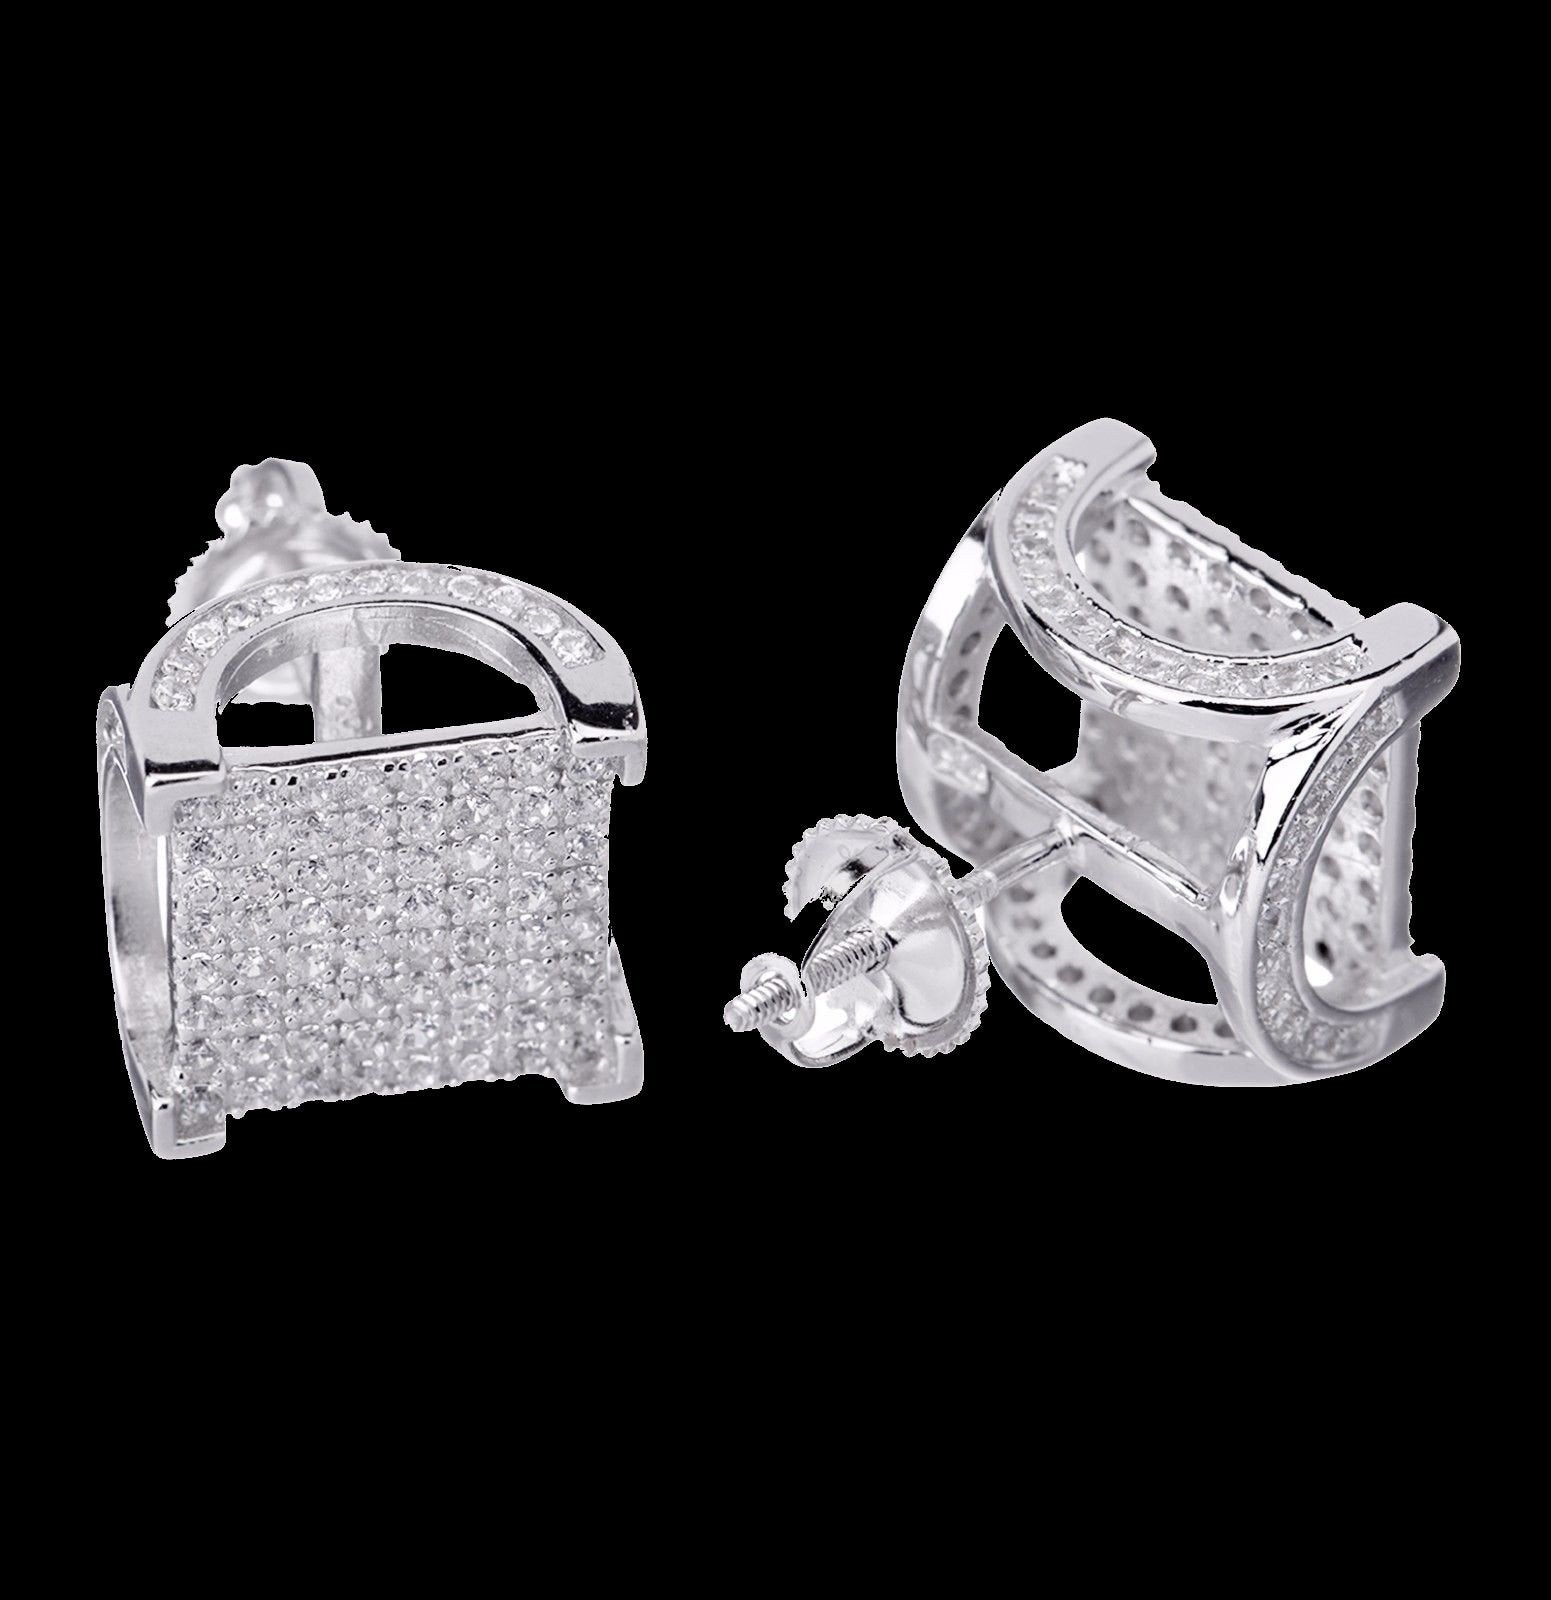 Men's Hip Hop 925 Silver 3D Square  Screw Back Earrings